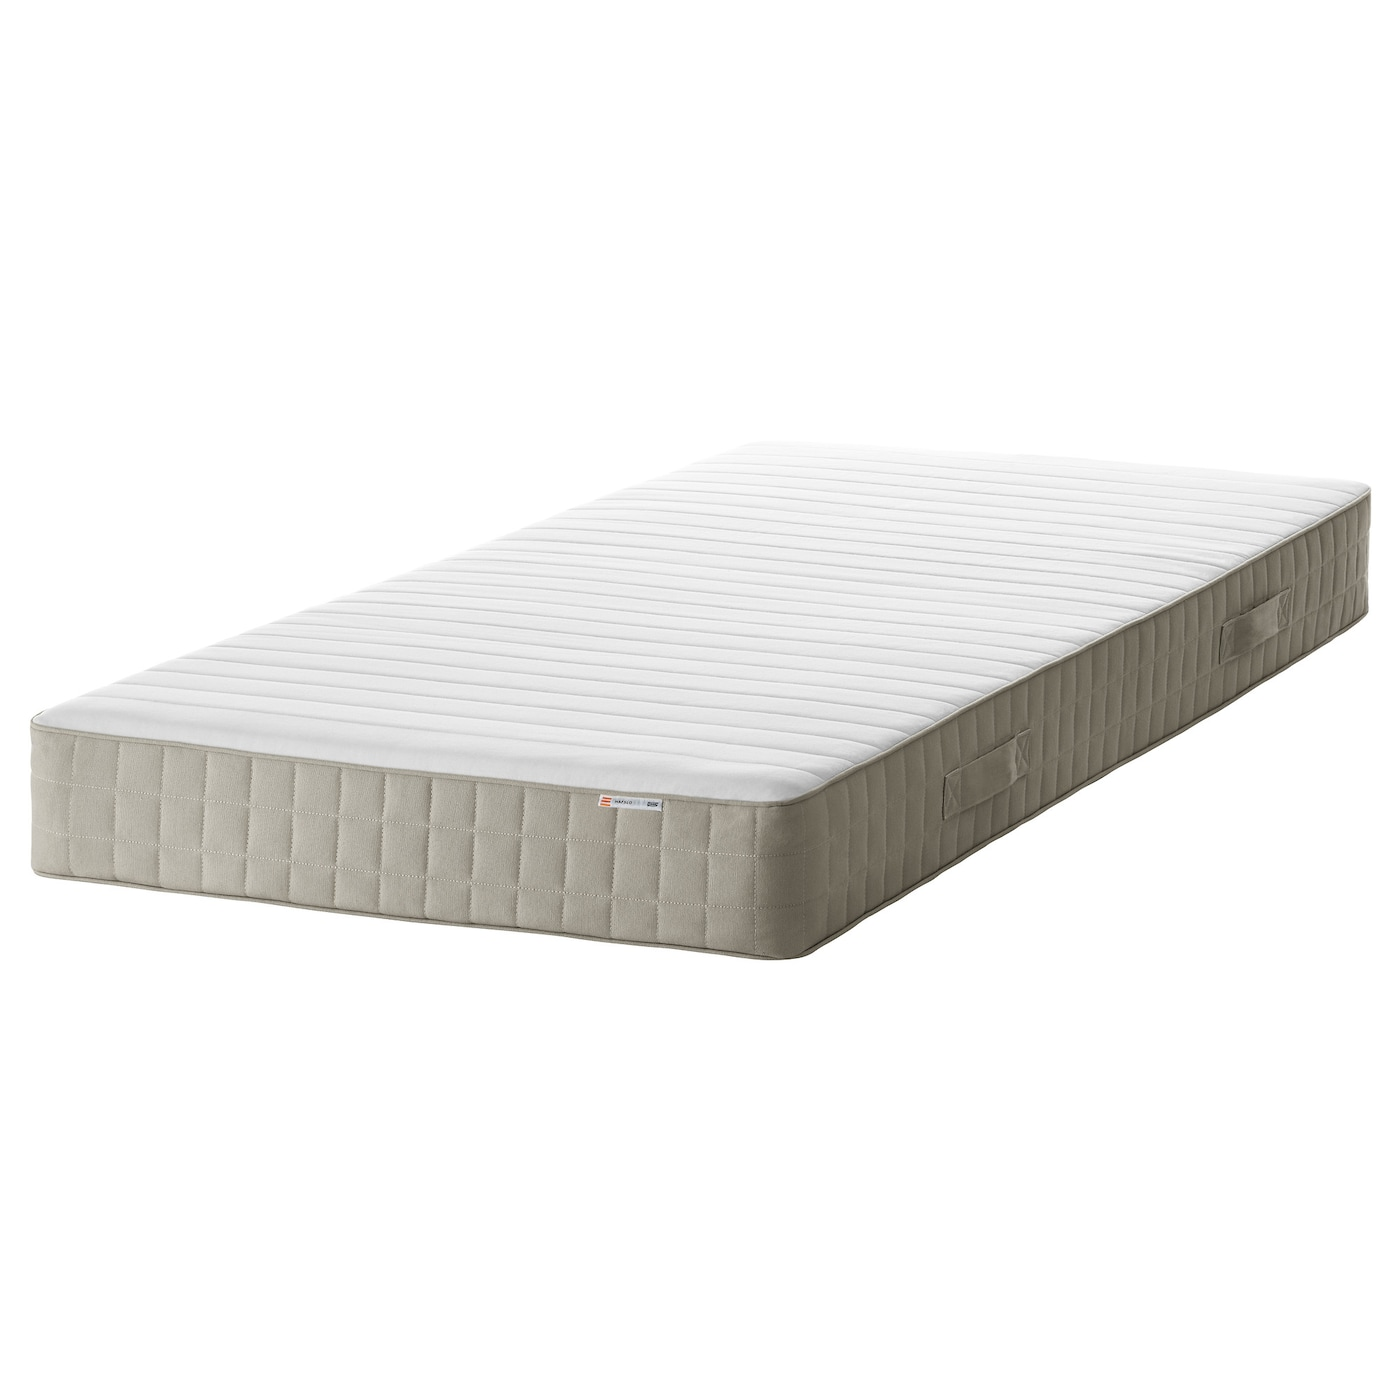 Hafslo sprung mattress firm beige standard single ikea - Colchon sultan ...